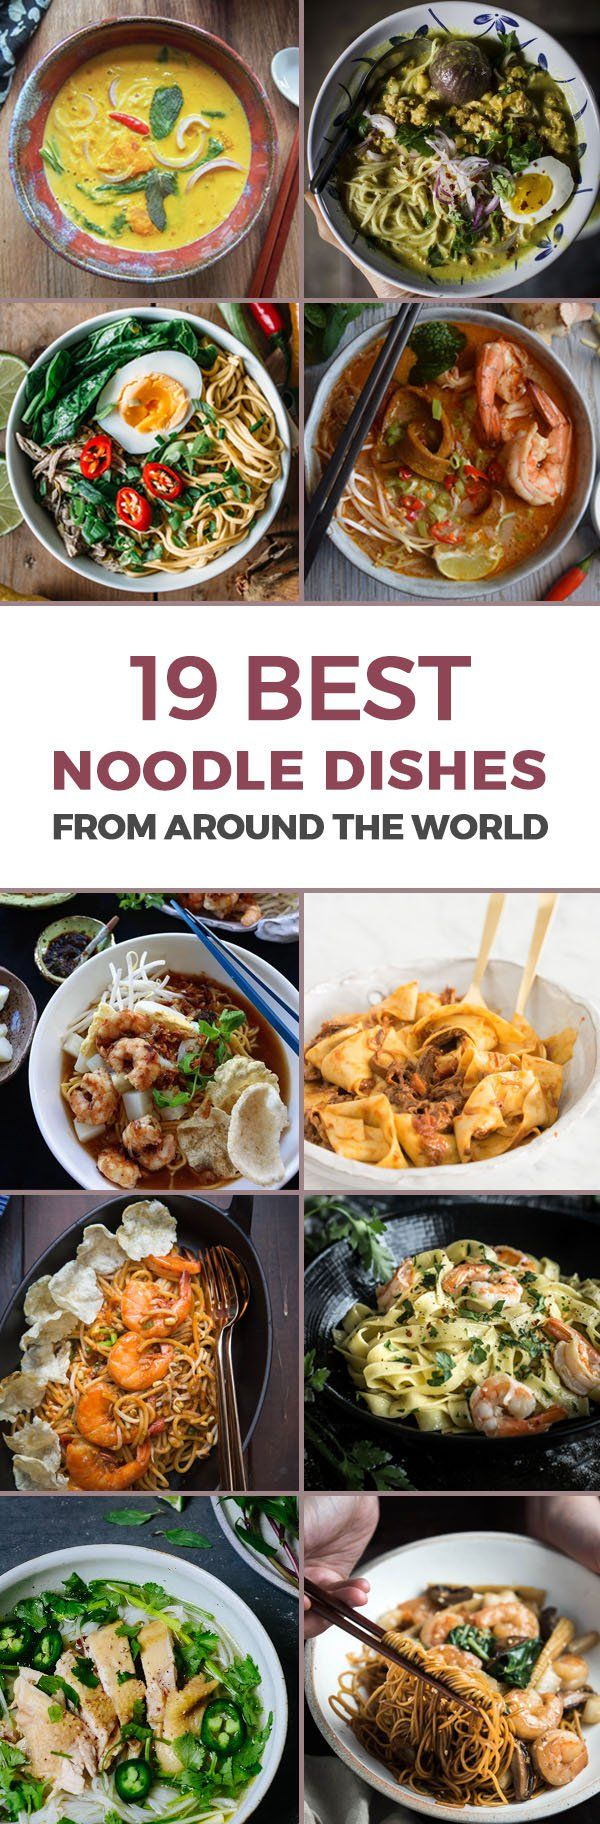 """<span style=""""font-weight: 400;"""">First stop: Shanghai! This recipe is adaptable for use with any kind of noodle, be it ramen, egg or udon. It's a perfect little side dish or accompaniment and uses onlysix ingredients! You can add extra toppings for a satisfying main. See recipe <a href=""""http://omnivorescookbook.com/scallion-oil-noodle/"""">here</a>.</span>"""